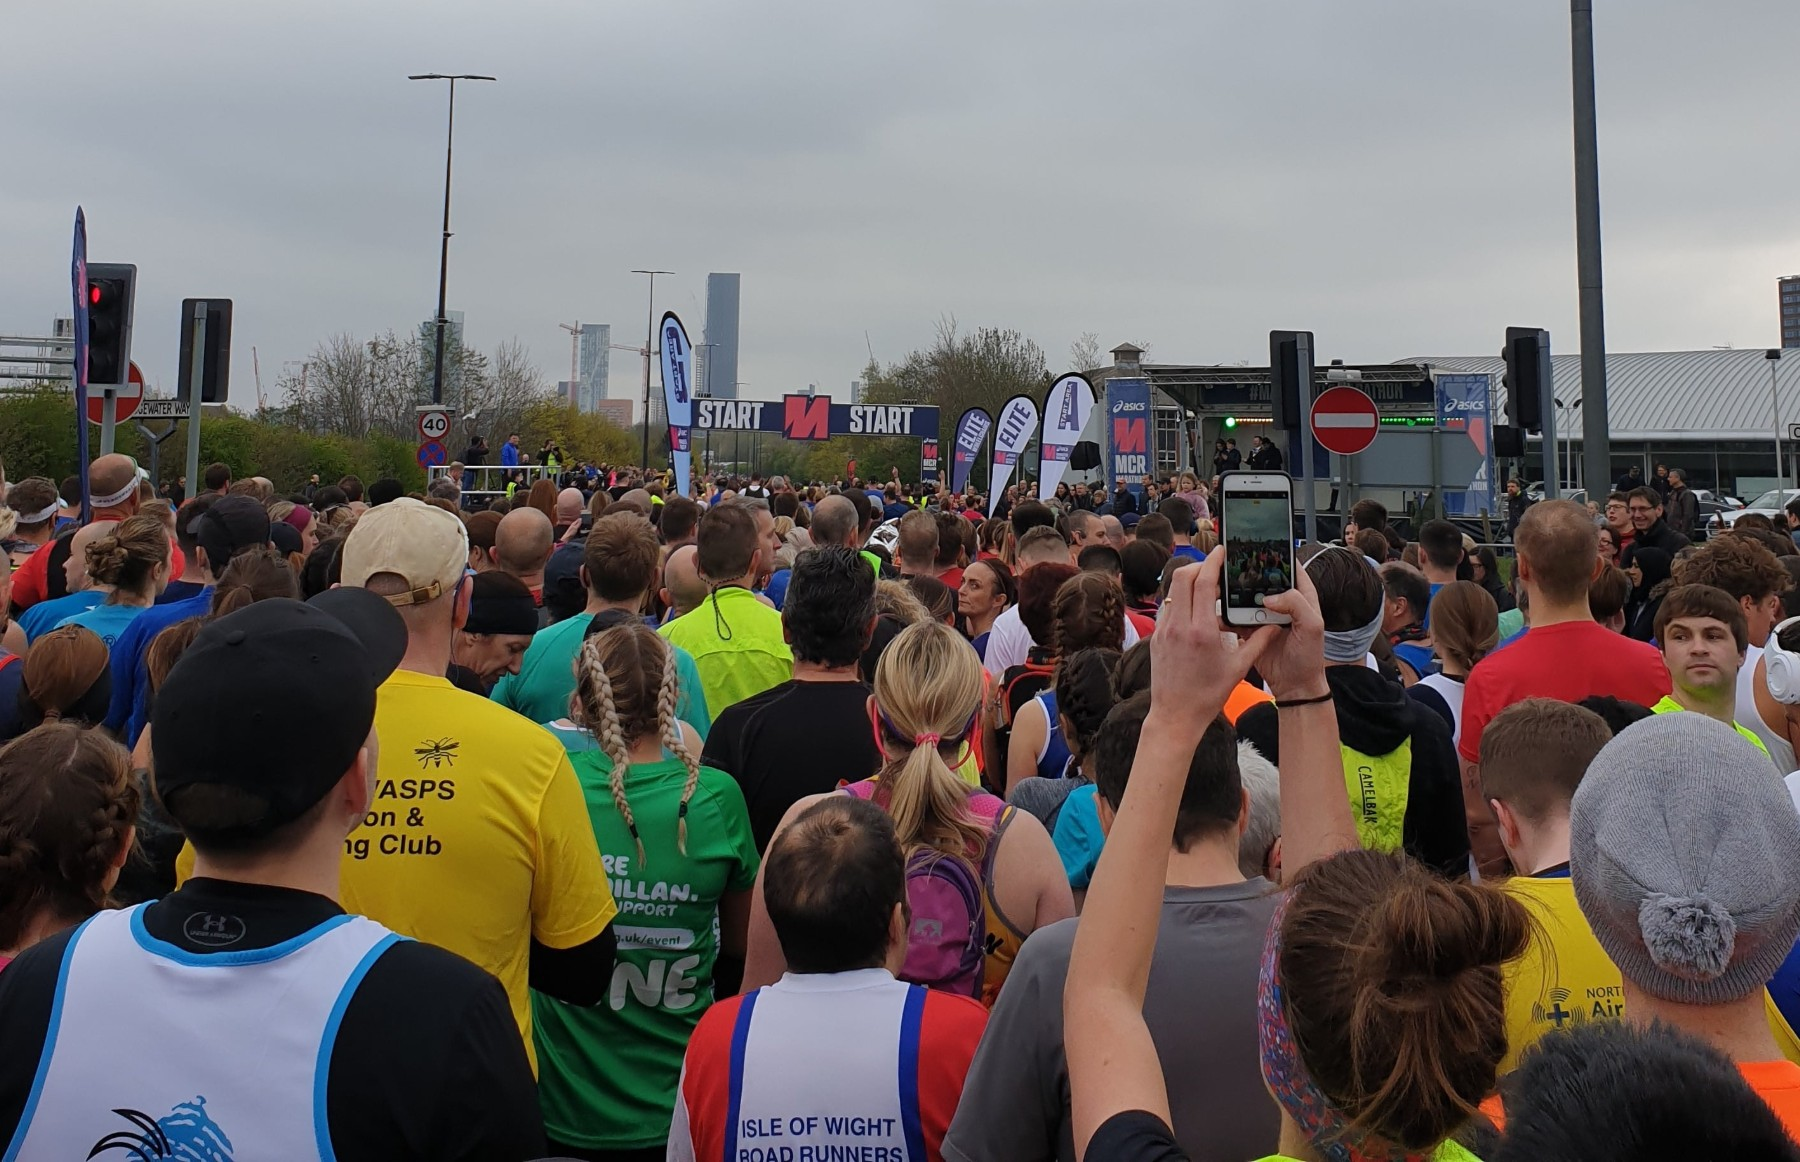 5 Things I Learnt From Running A Marathon